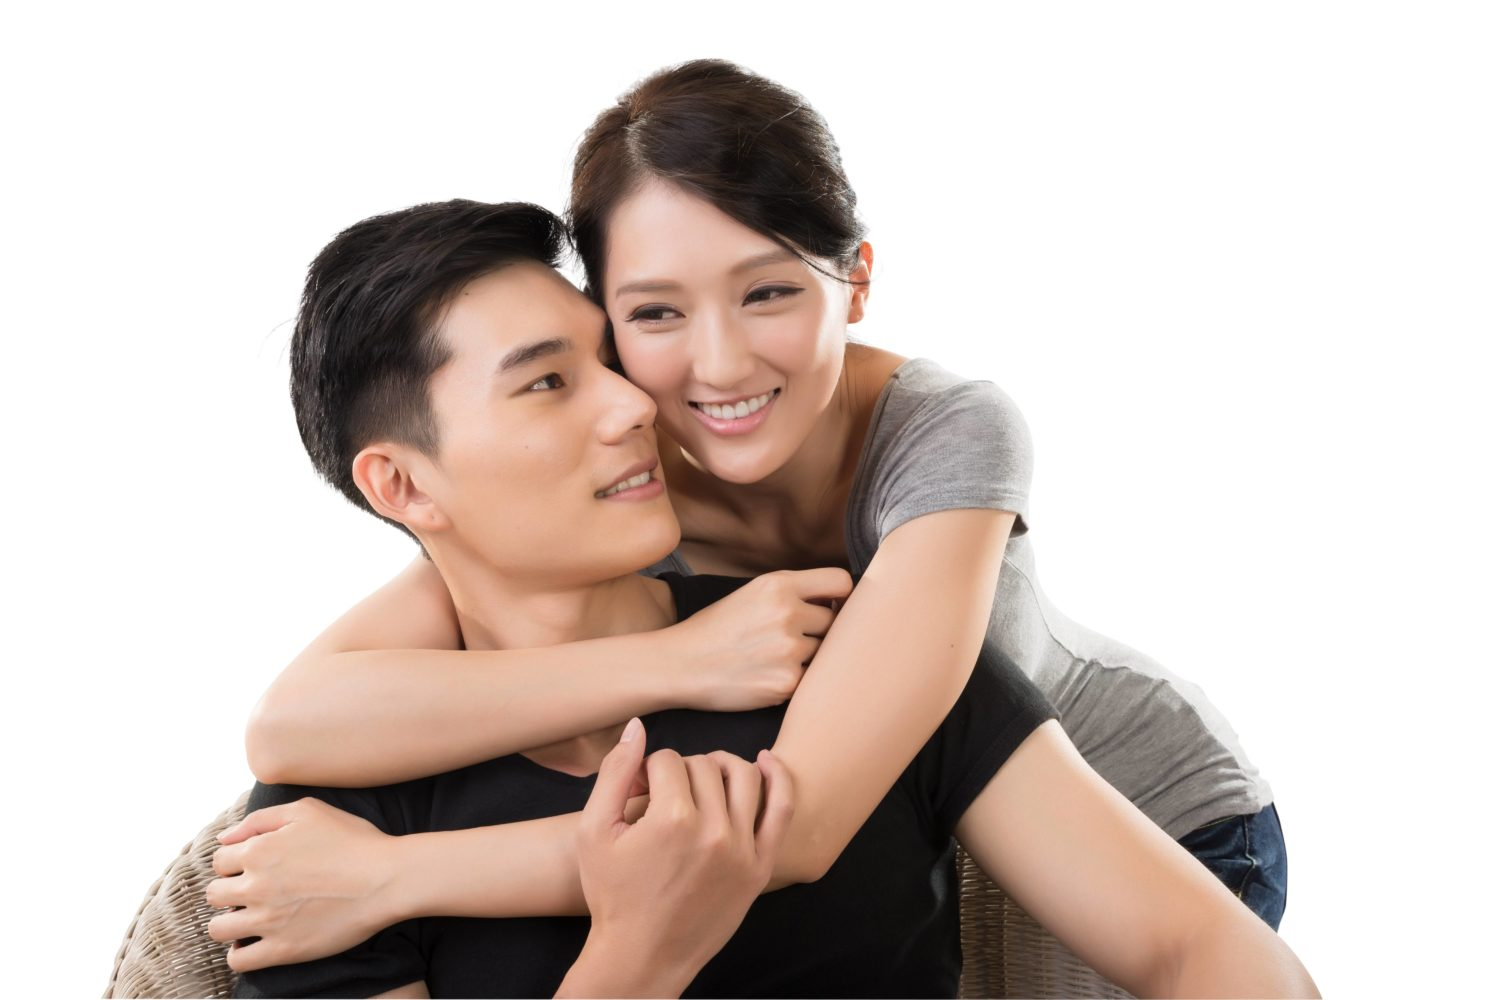 Shaved Asian Teen Couple